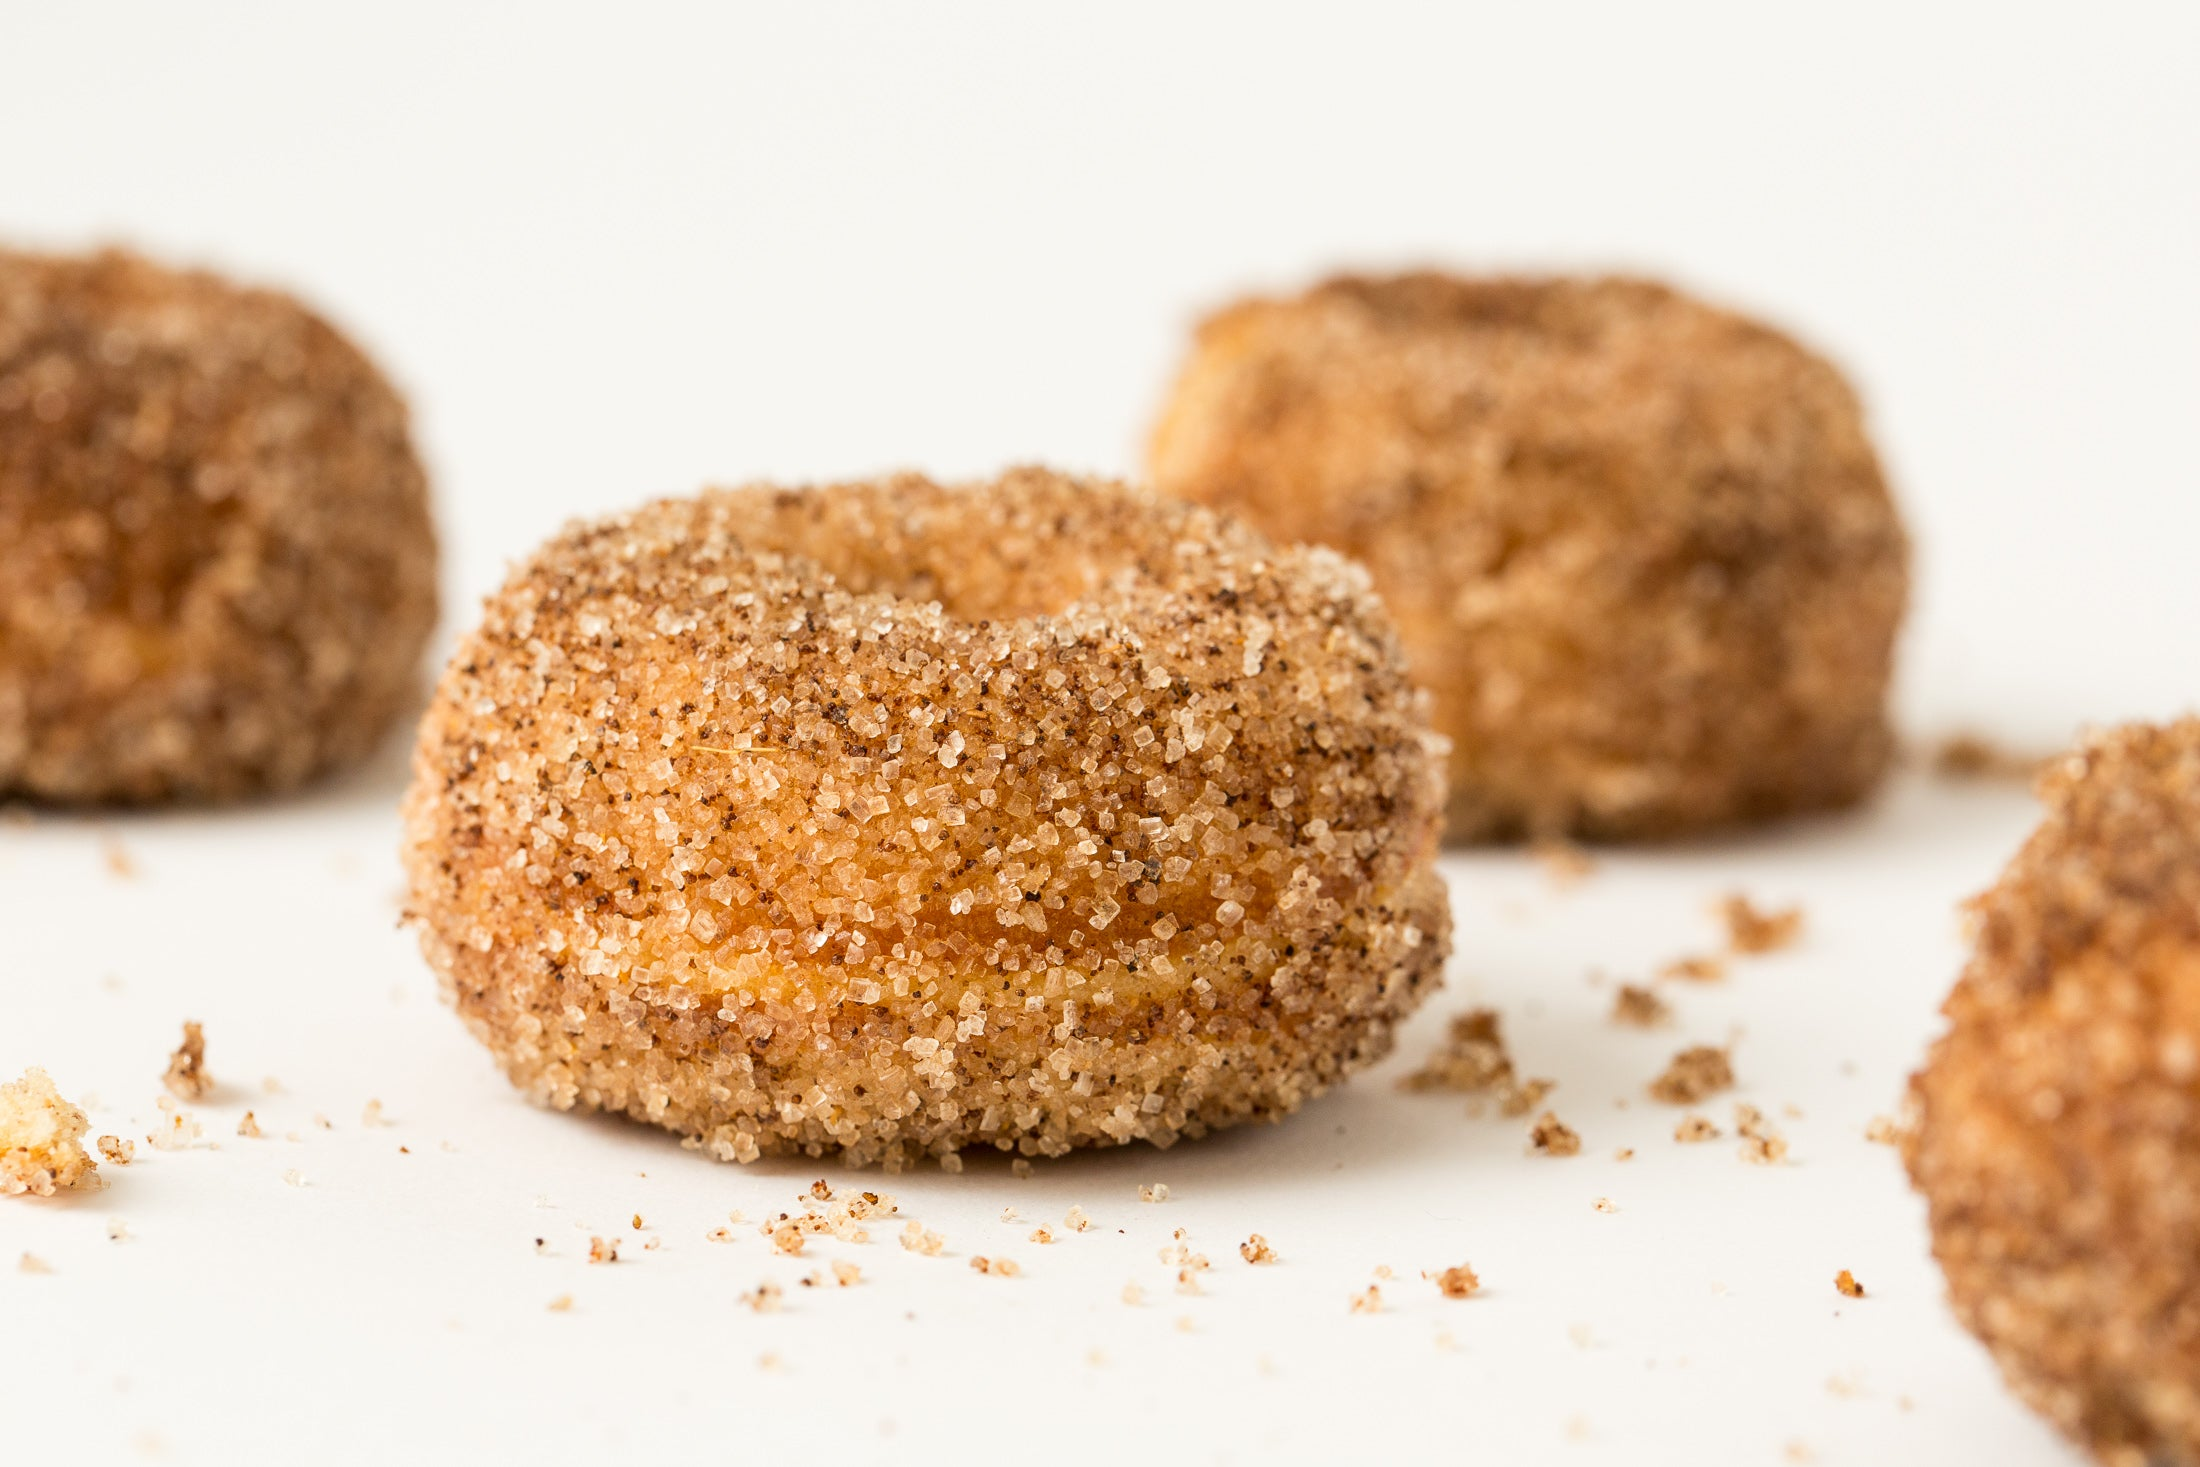 Close up image of four Miss Jones Baking Co Dirty Chai Mini Donuts from the side